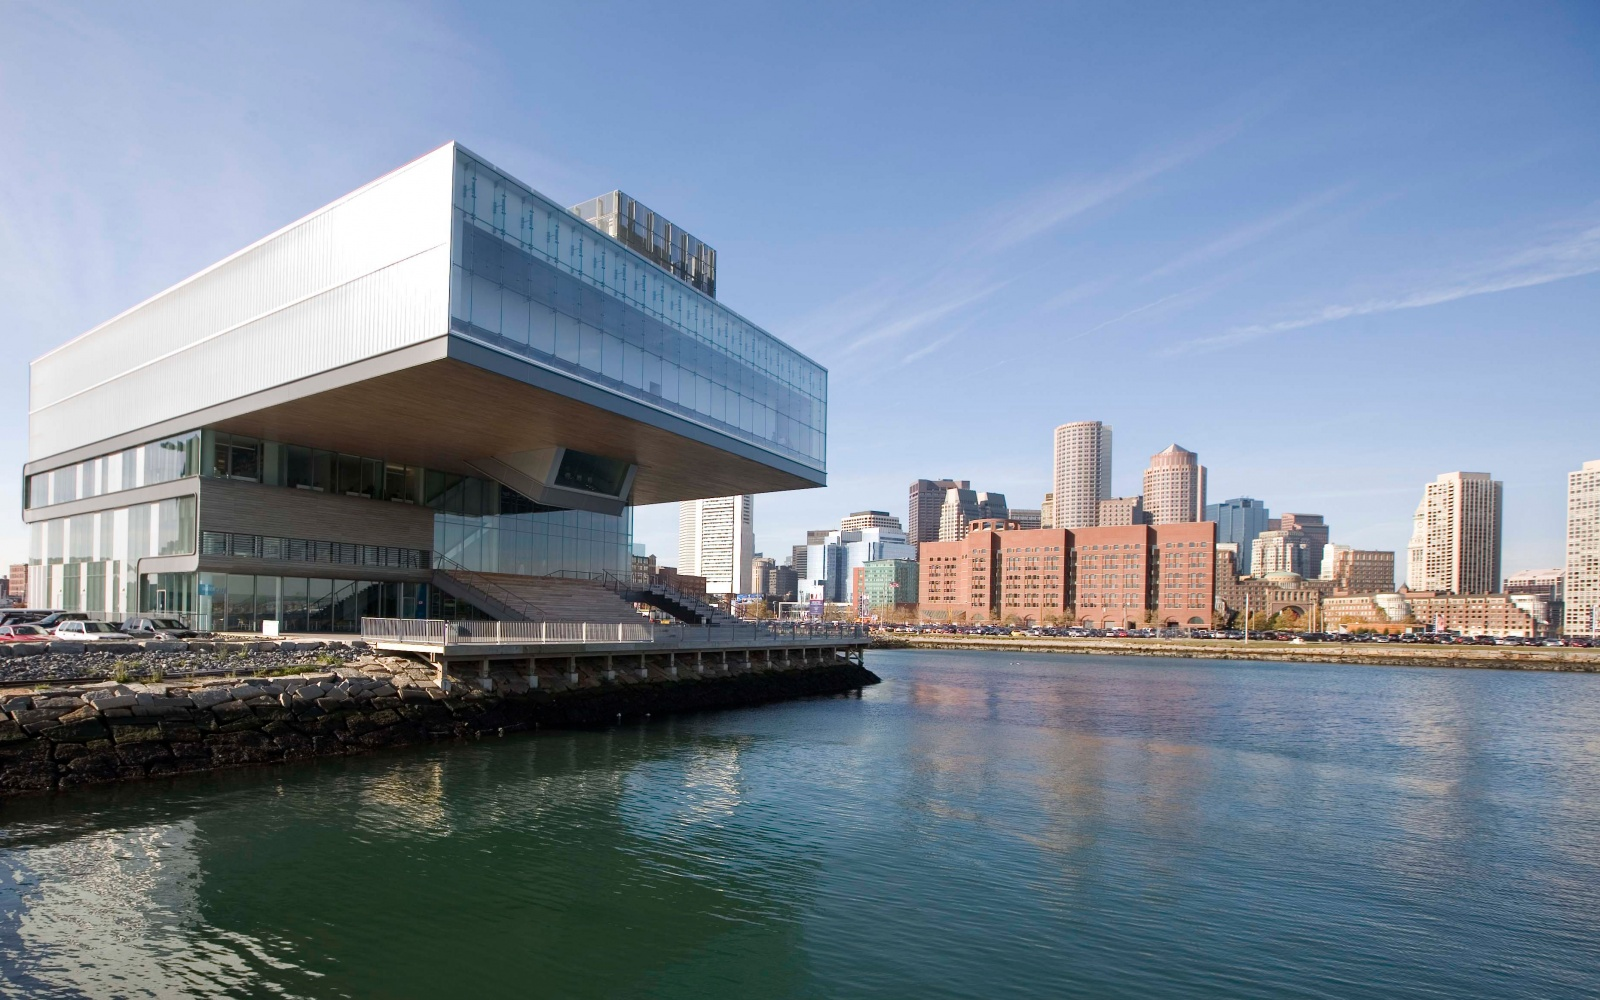 Institute of Contemporary Art by the bay in Boston, MA